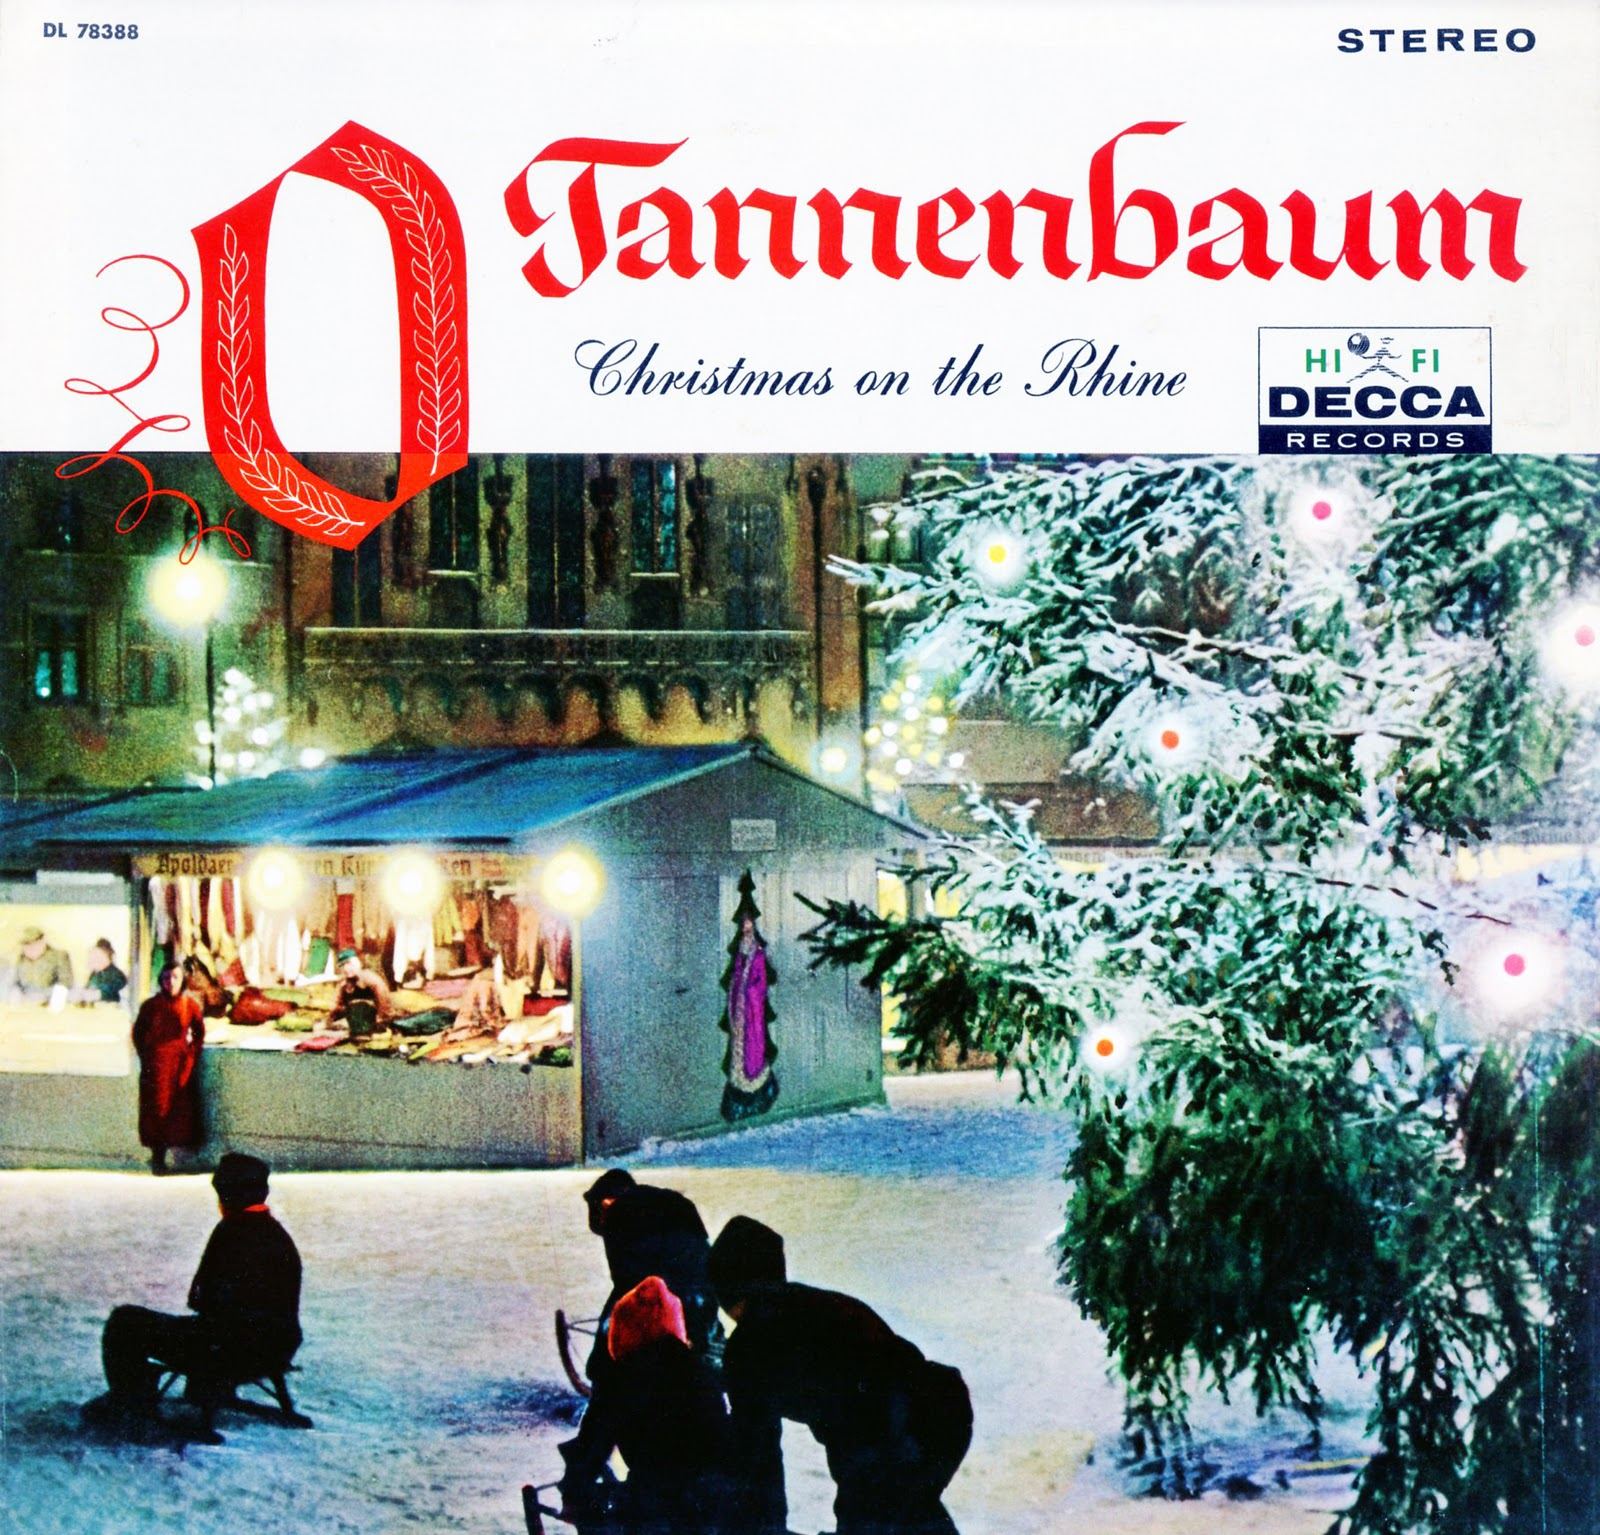 O tannenbaum christmas on the rhine werner muller - Obi tannenbaum ...